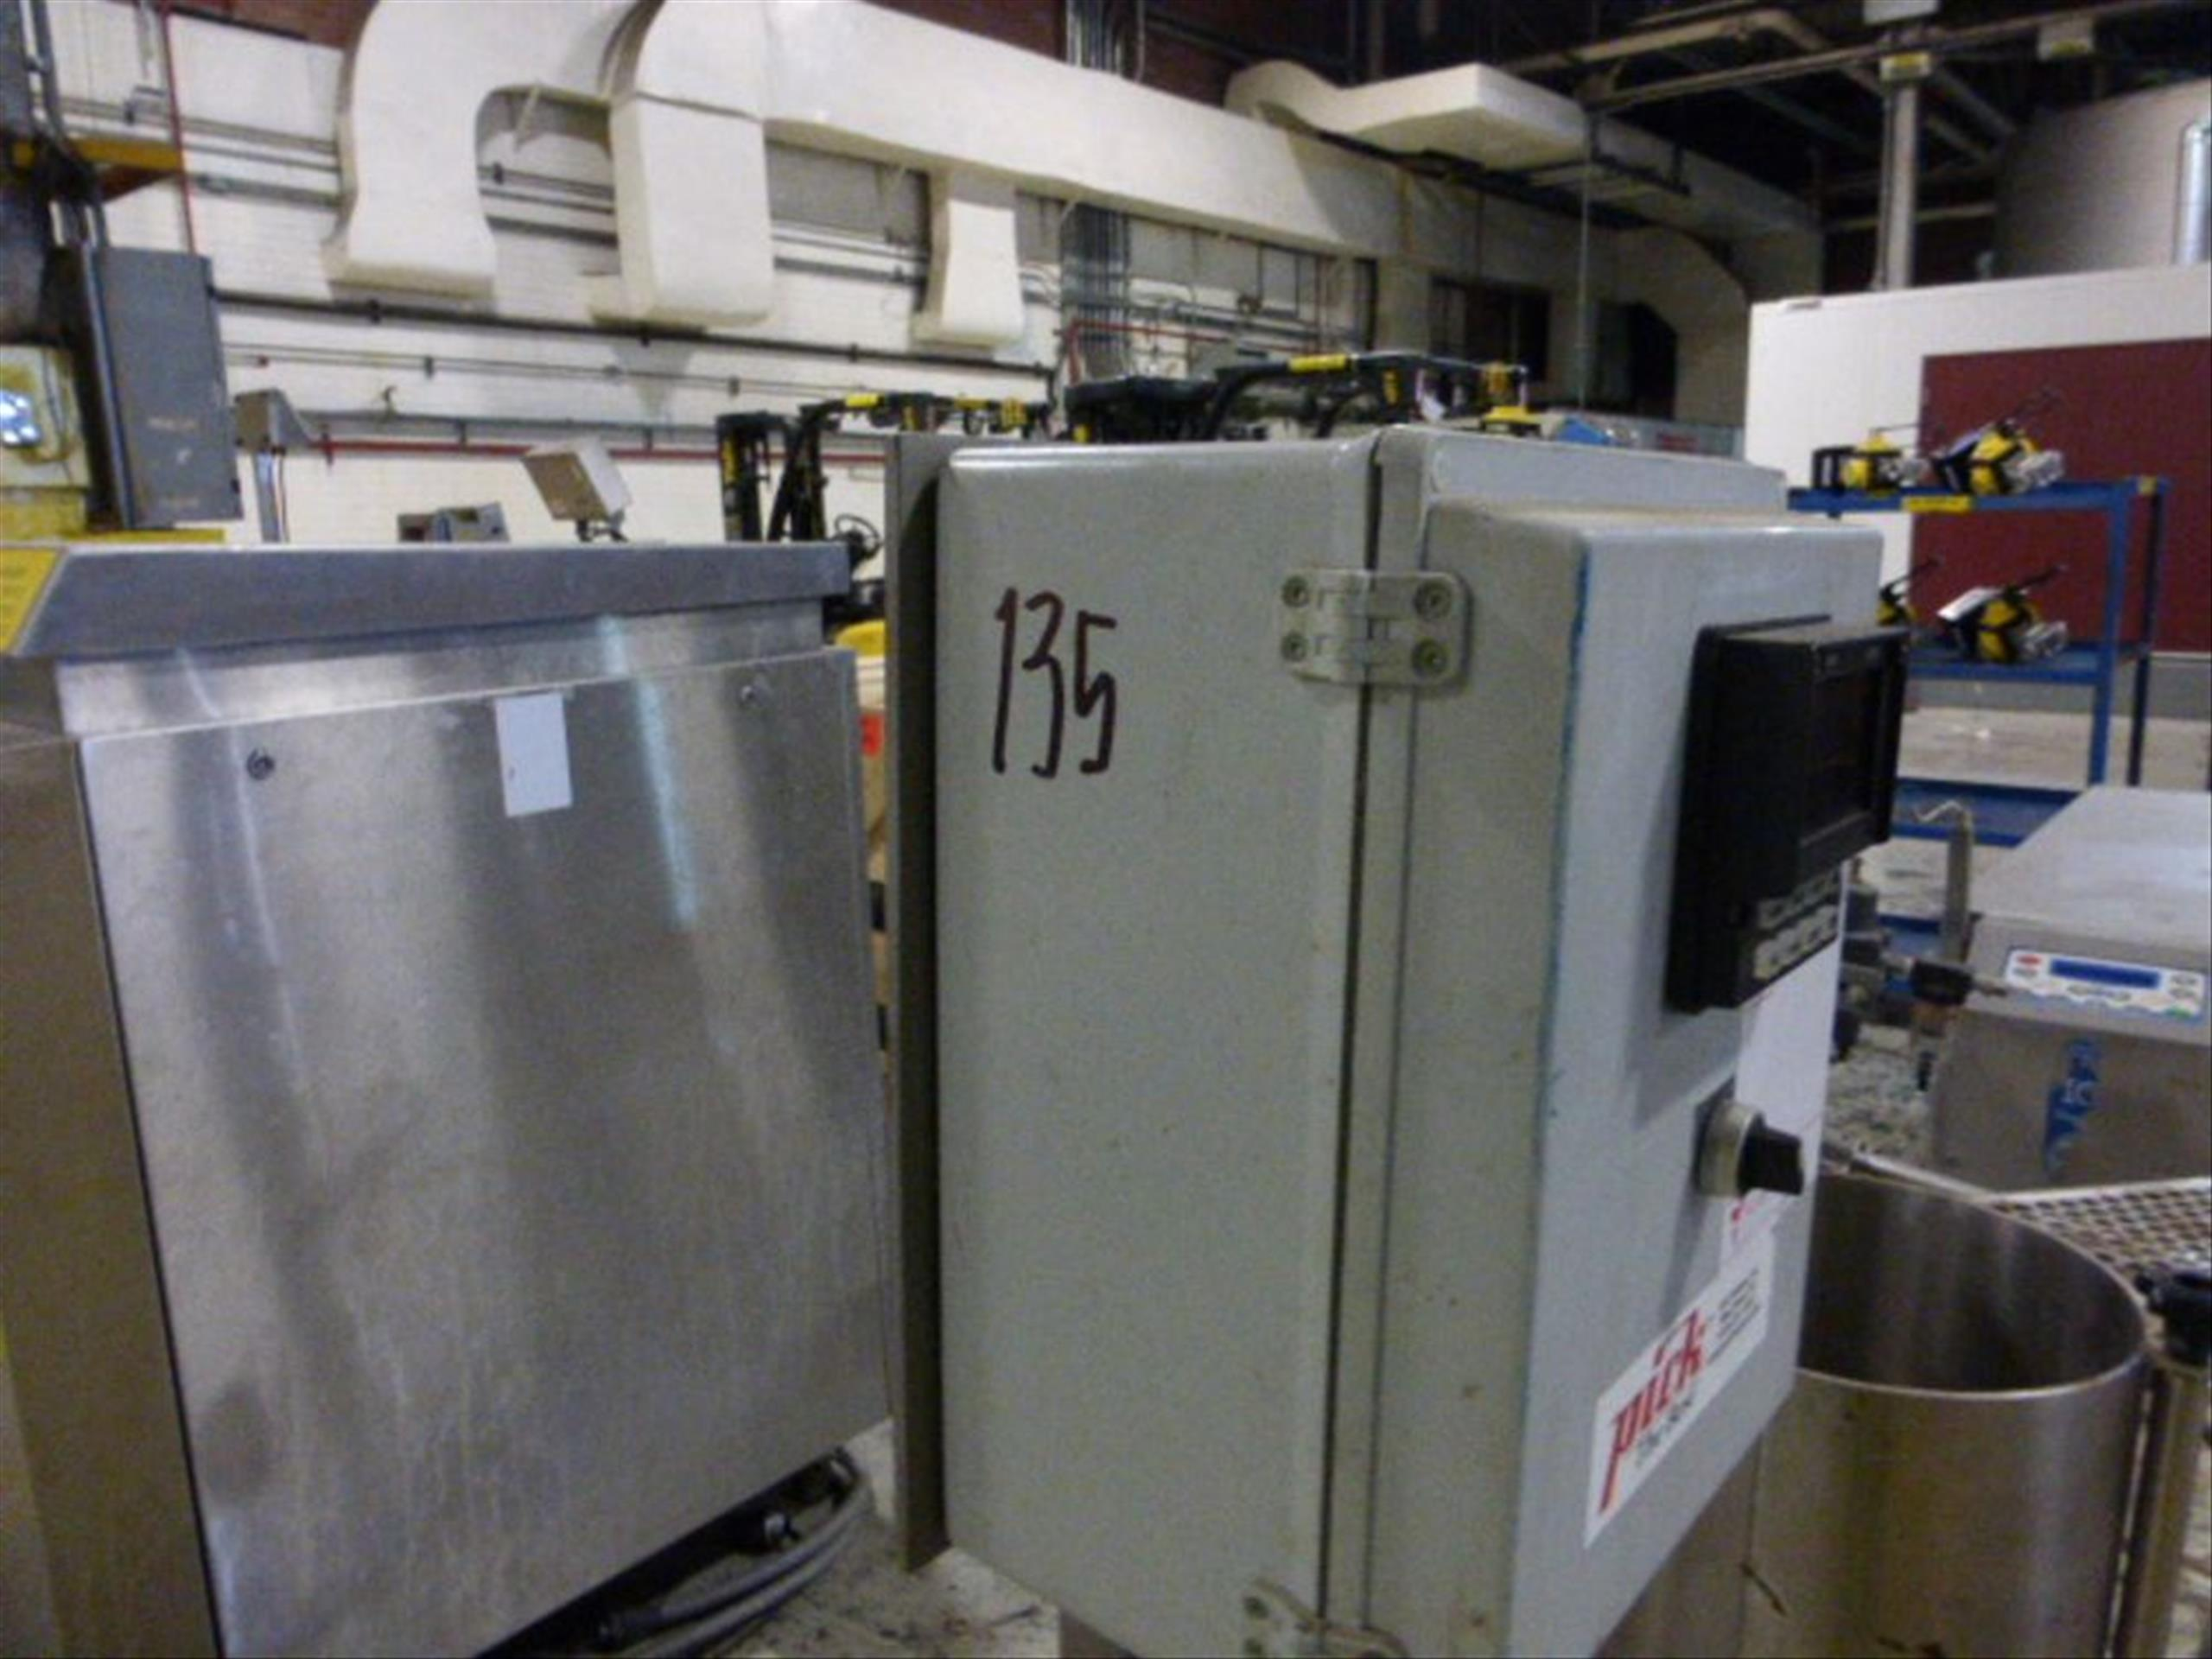 Pick Heating Process Unit with Moyno EB2A SSE3 #7427602 with 0.5 HP Stainless Steel Tank, 11.5 in